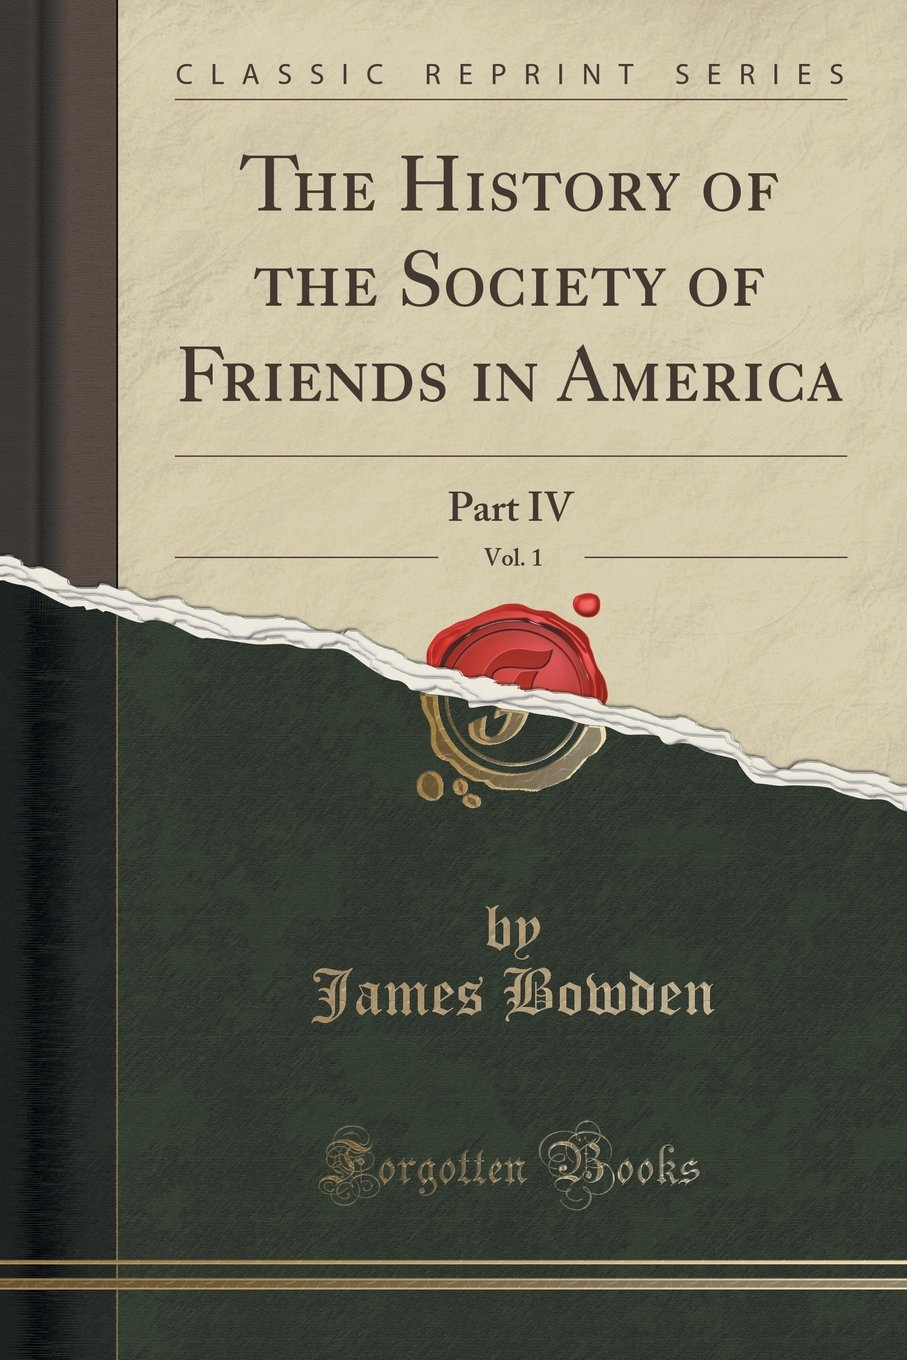 The History of the Society of Friends in America, Vol. 1: Part IV (Classic Reprint)